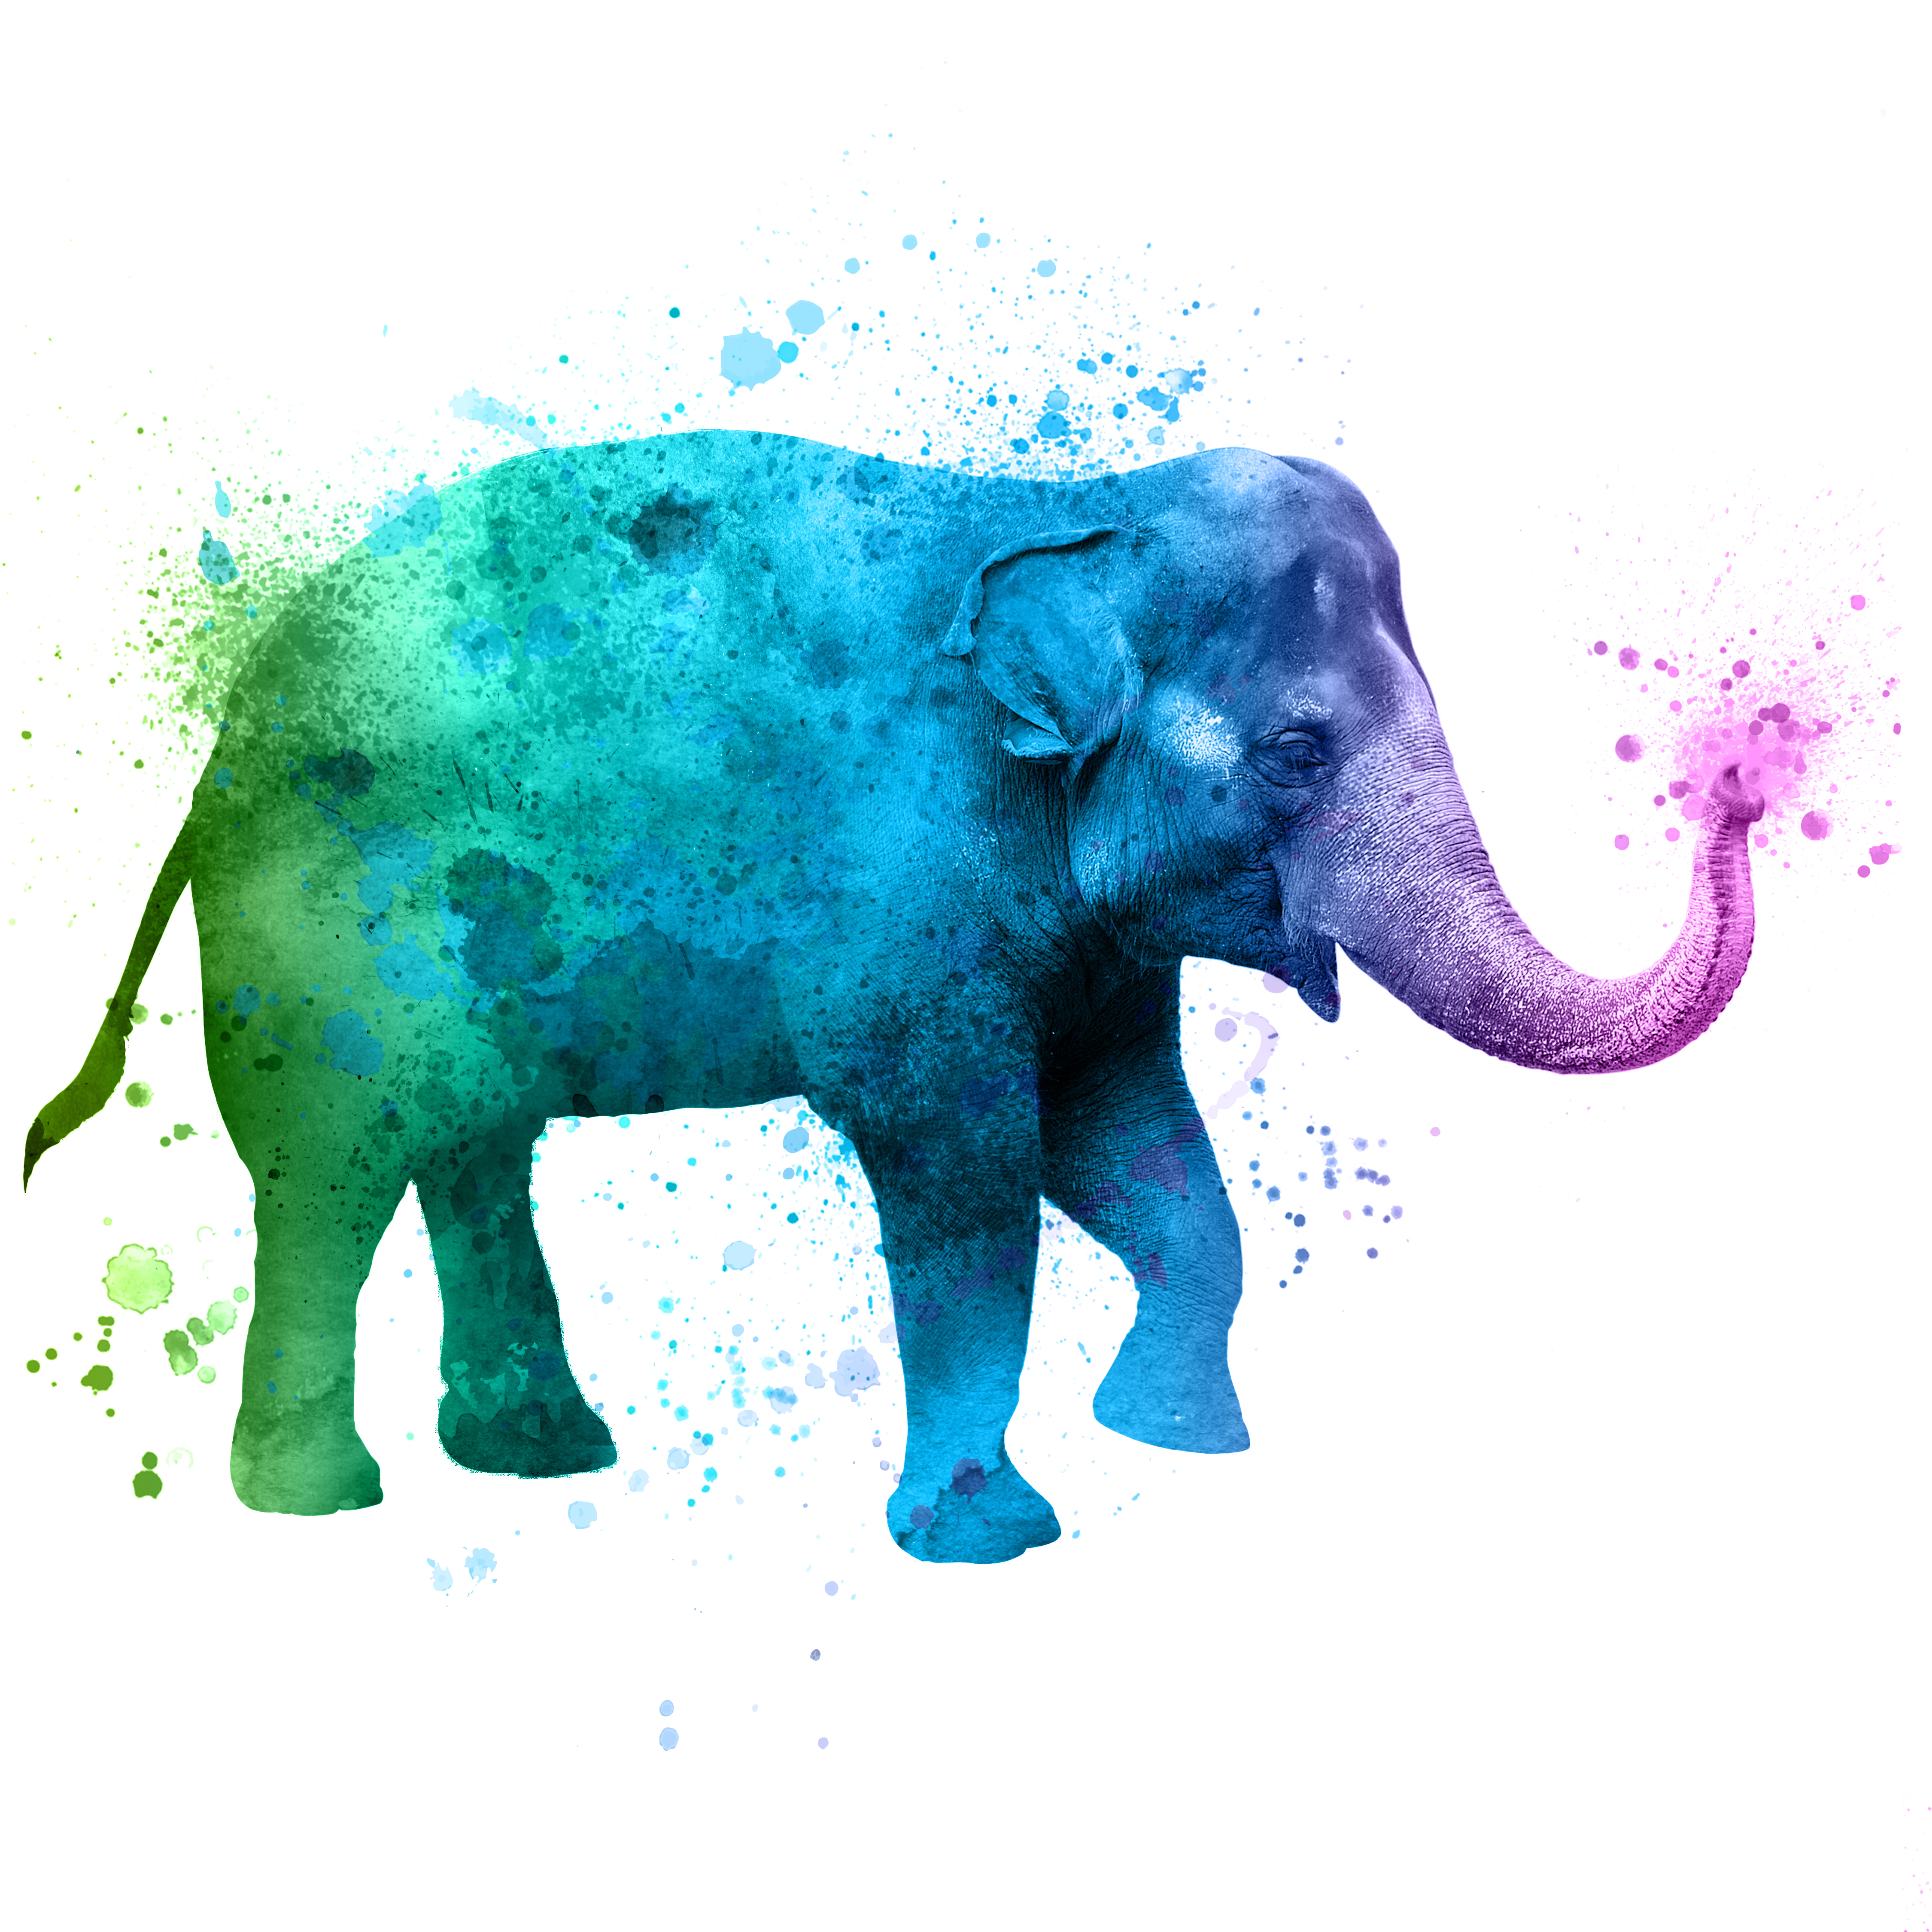 watercolor elephant for A Wilder Vision campaign at the Fort Worth Zoo